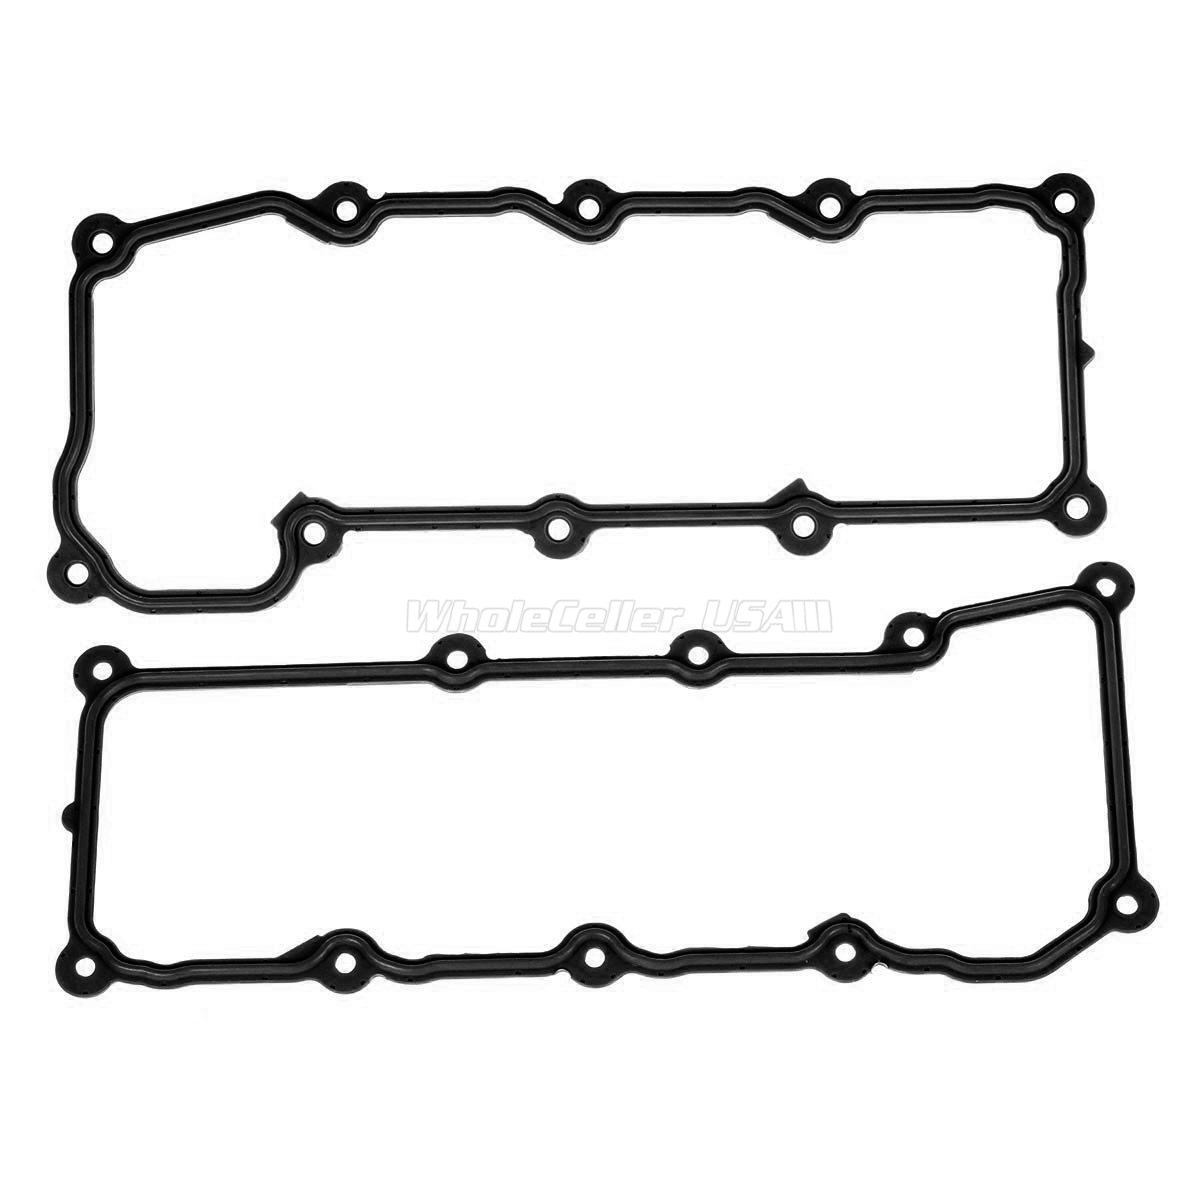 Valve Cover Gasket Set For Dodge Dakota Durango 4 7l